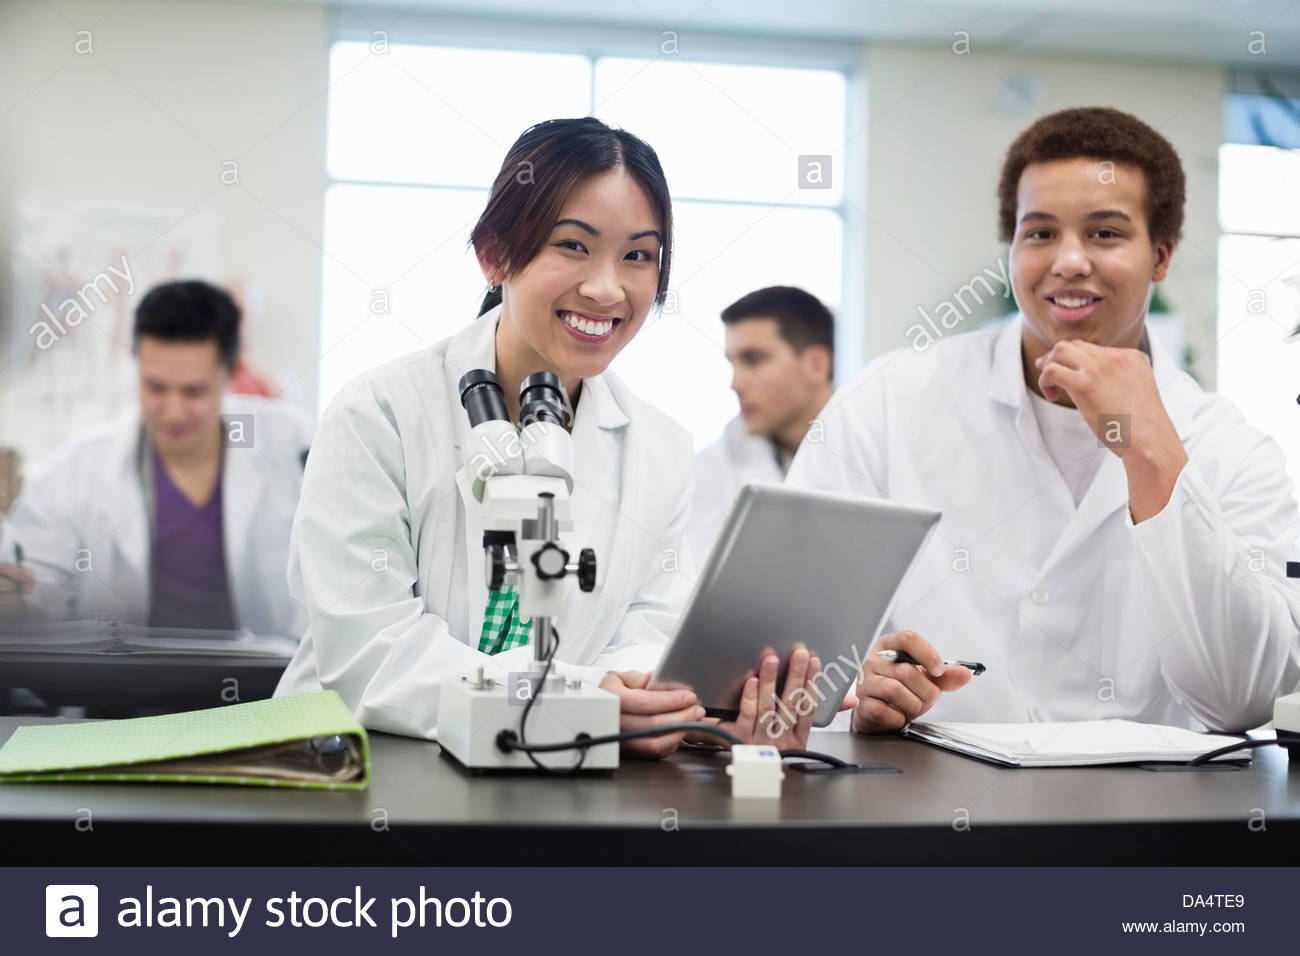 Portrait of students with digital tablet in college science lab - Stock Image